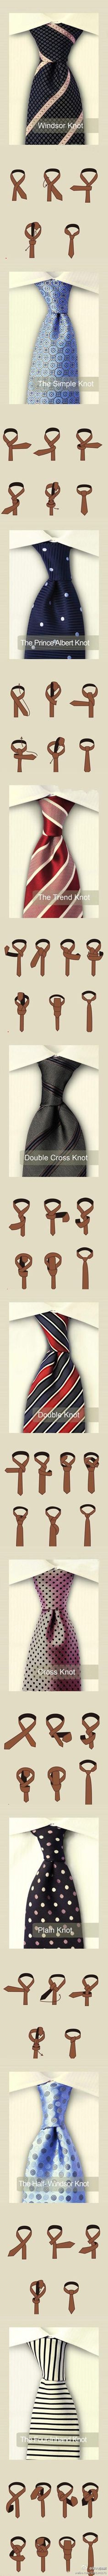 Tie tying. One day ill need to know this